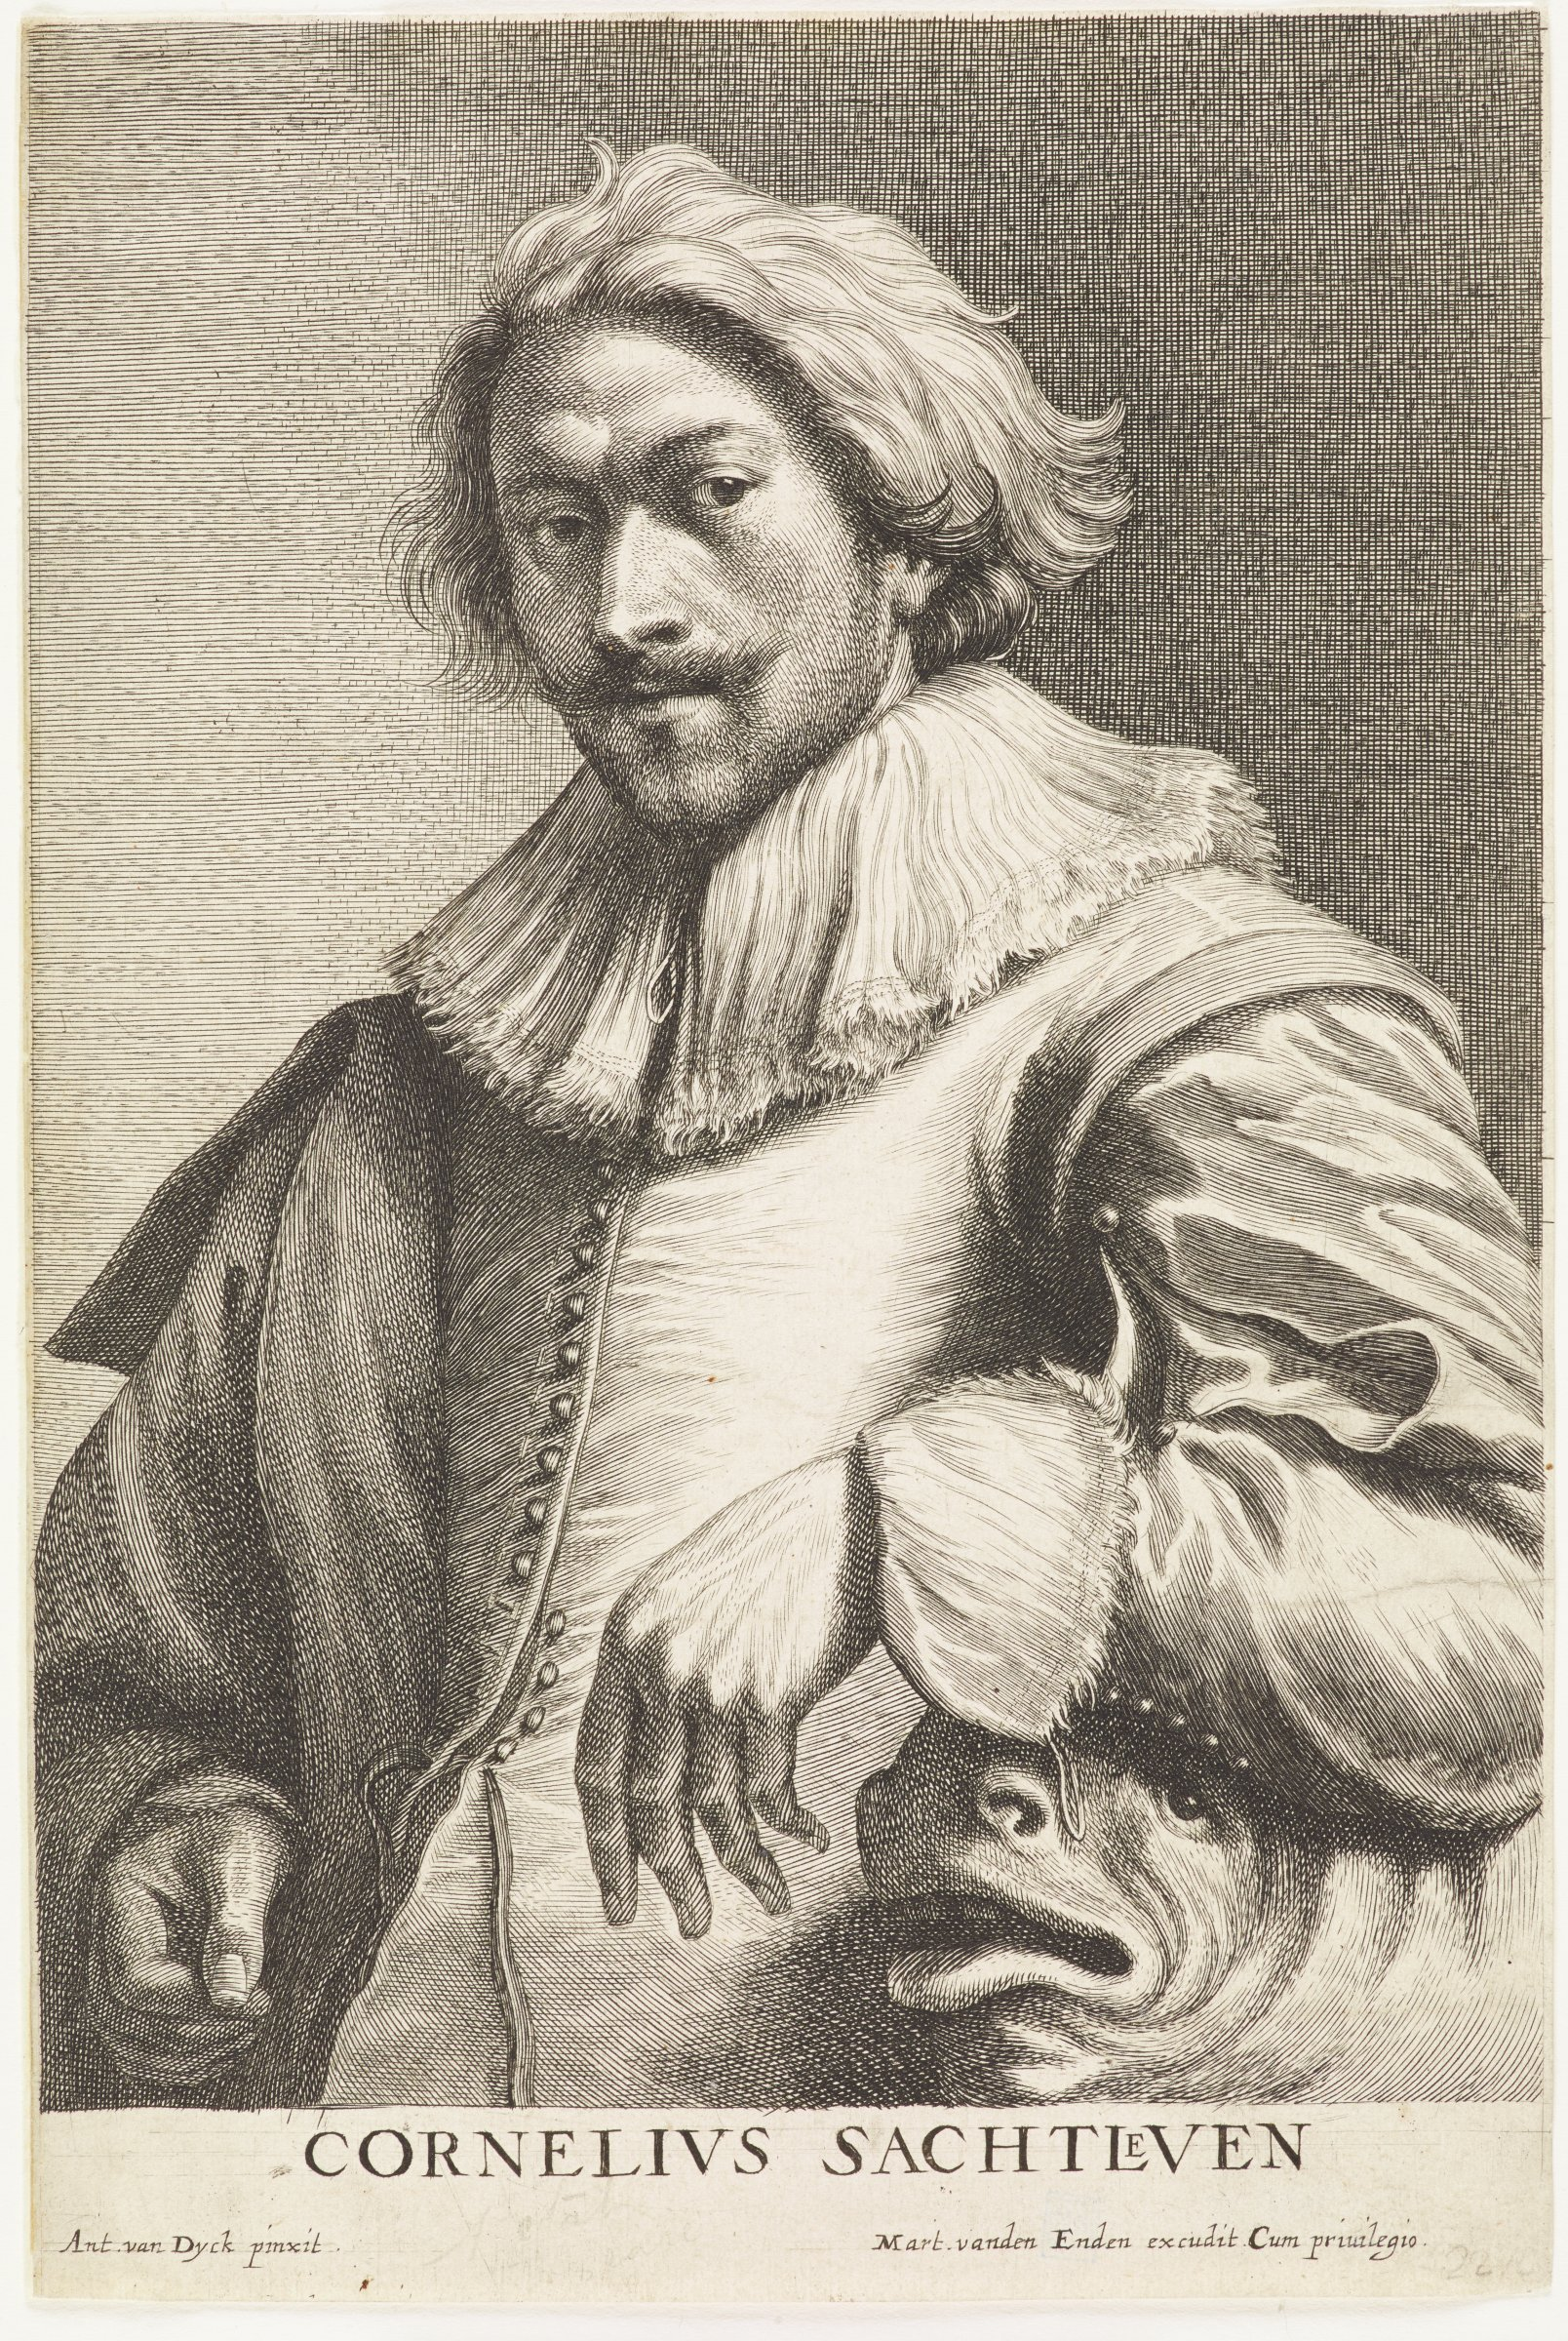 Saftleven was a painter. He is seen here in portrait from the waist up. His left arm rests on an animal-like creature as he looks out at the viewer. He has wavy hair and wears a wide, frilled collar. This image is from the Martinus vanden Enden edition of the Iconography that was printed during van Dyck's lifetime.